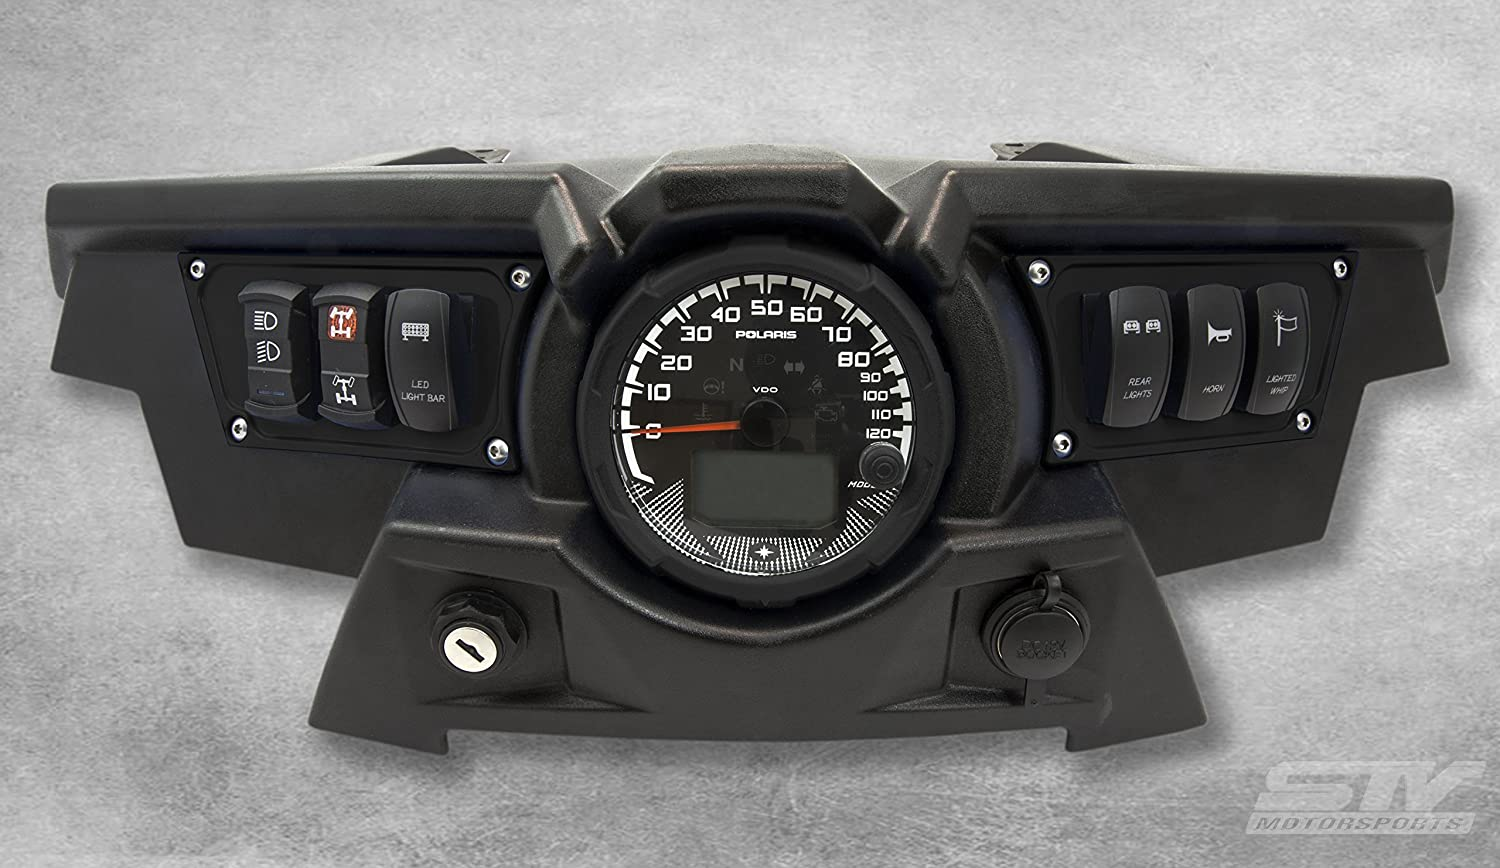 STV Motorsports Custom Aluminum Black Dash Panel for 2015-2018 Polaris RZR XP 900 with 4 Laser Rocker Switches Included